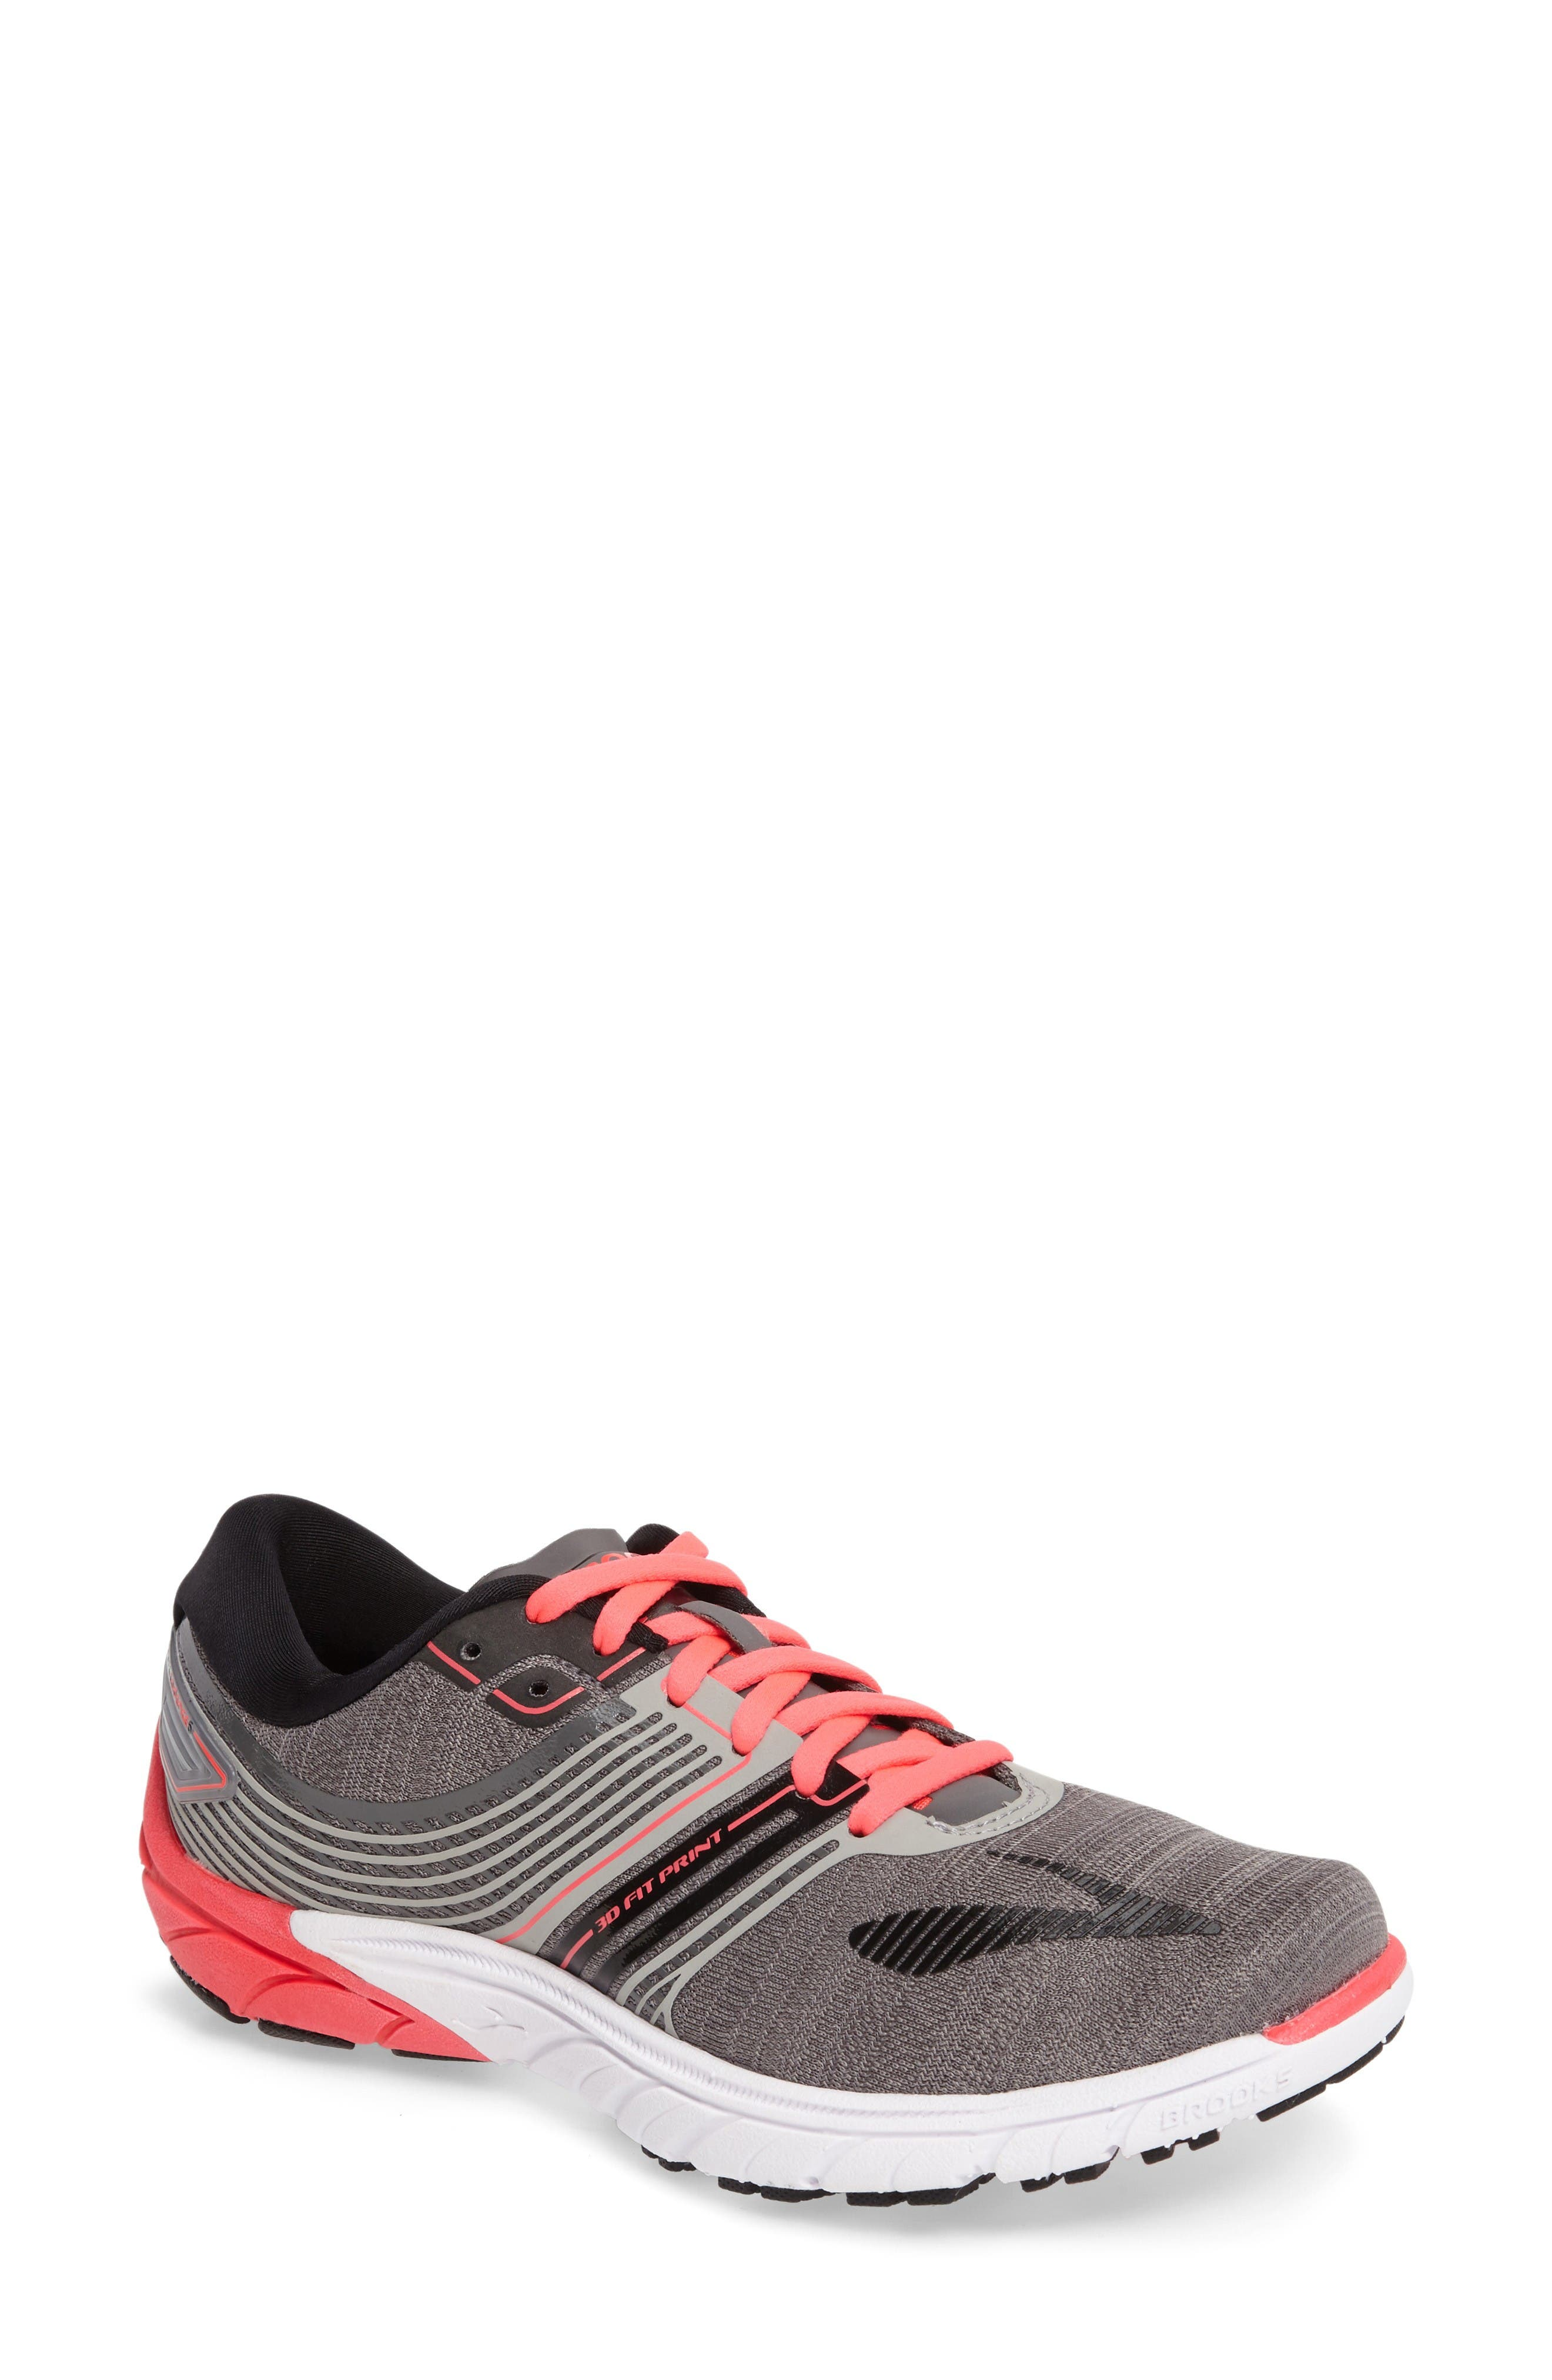 PureCadence 6 Running Shoe,                             Main thumbnail 1, color,                             Castle Rock/ Black/ Diva Pink